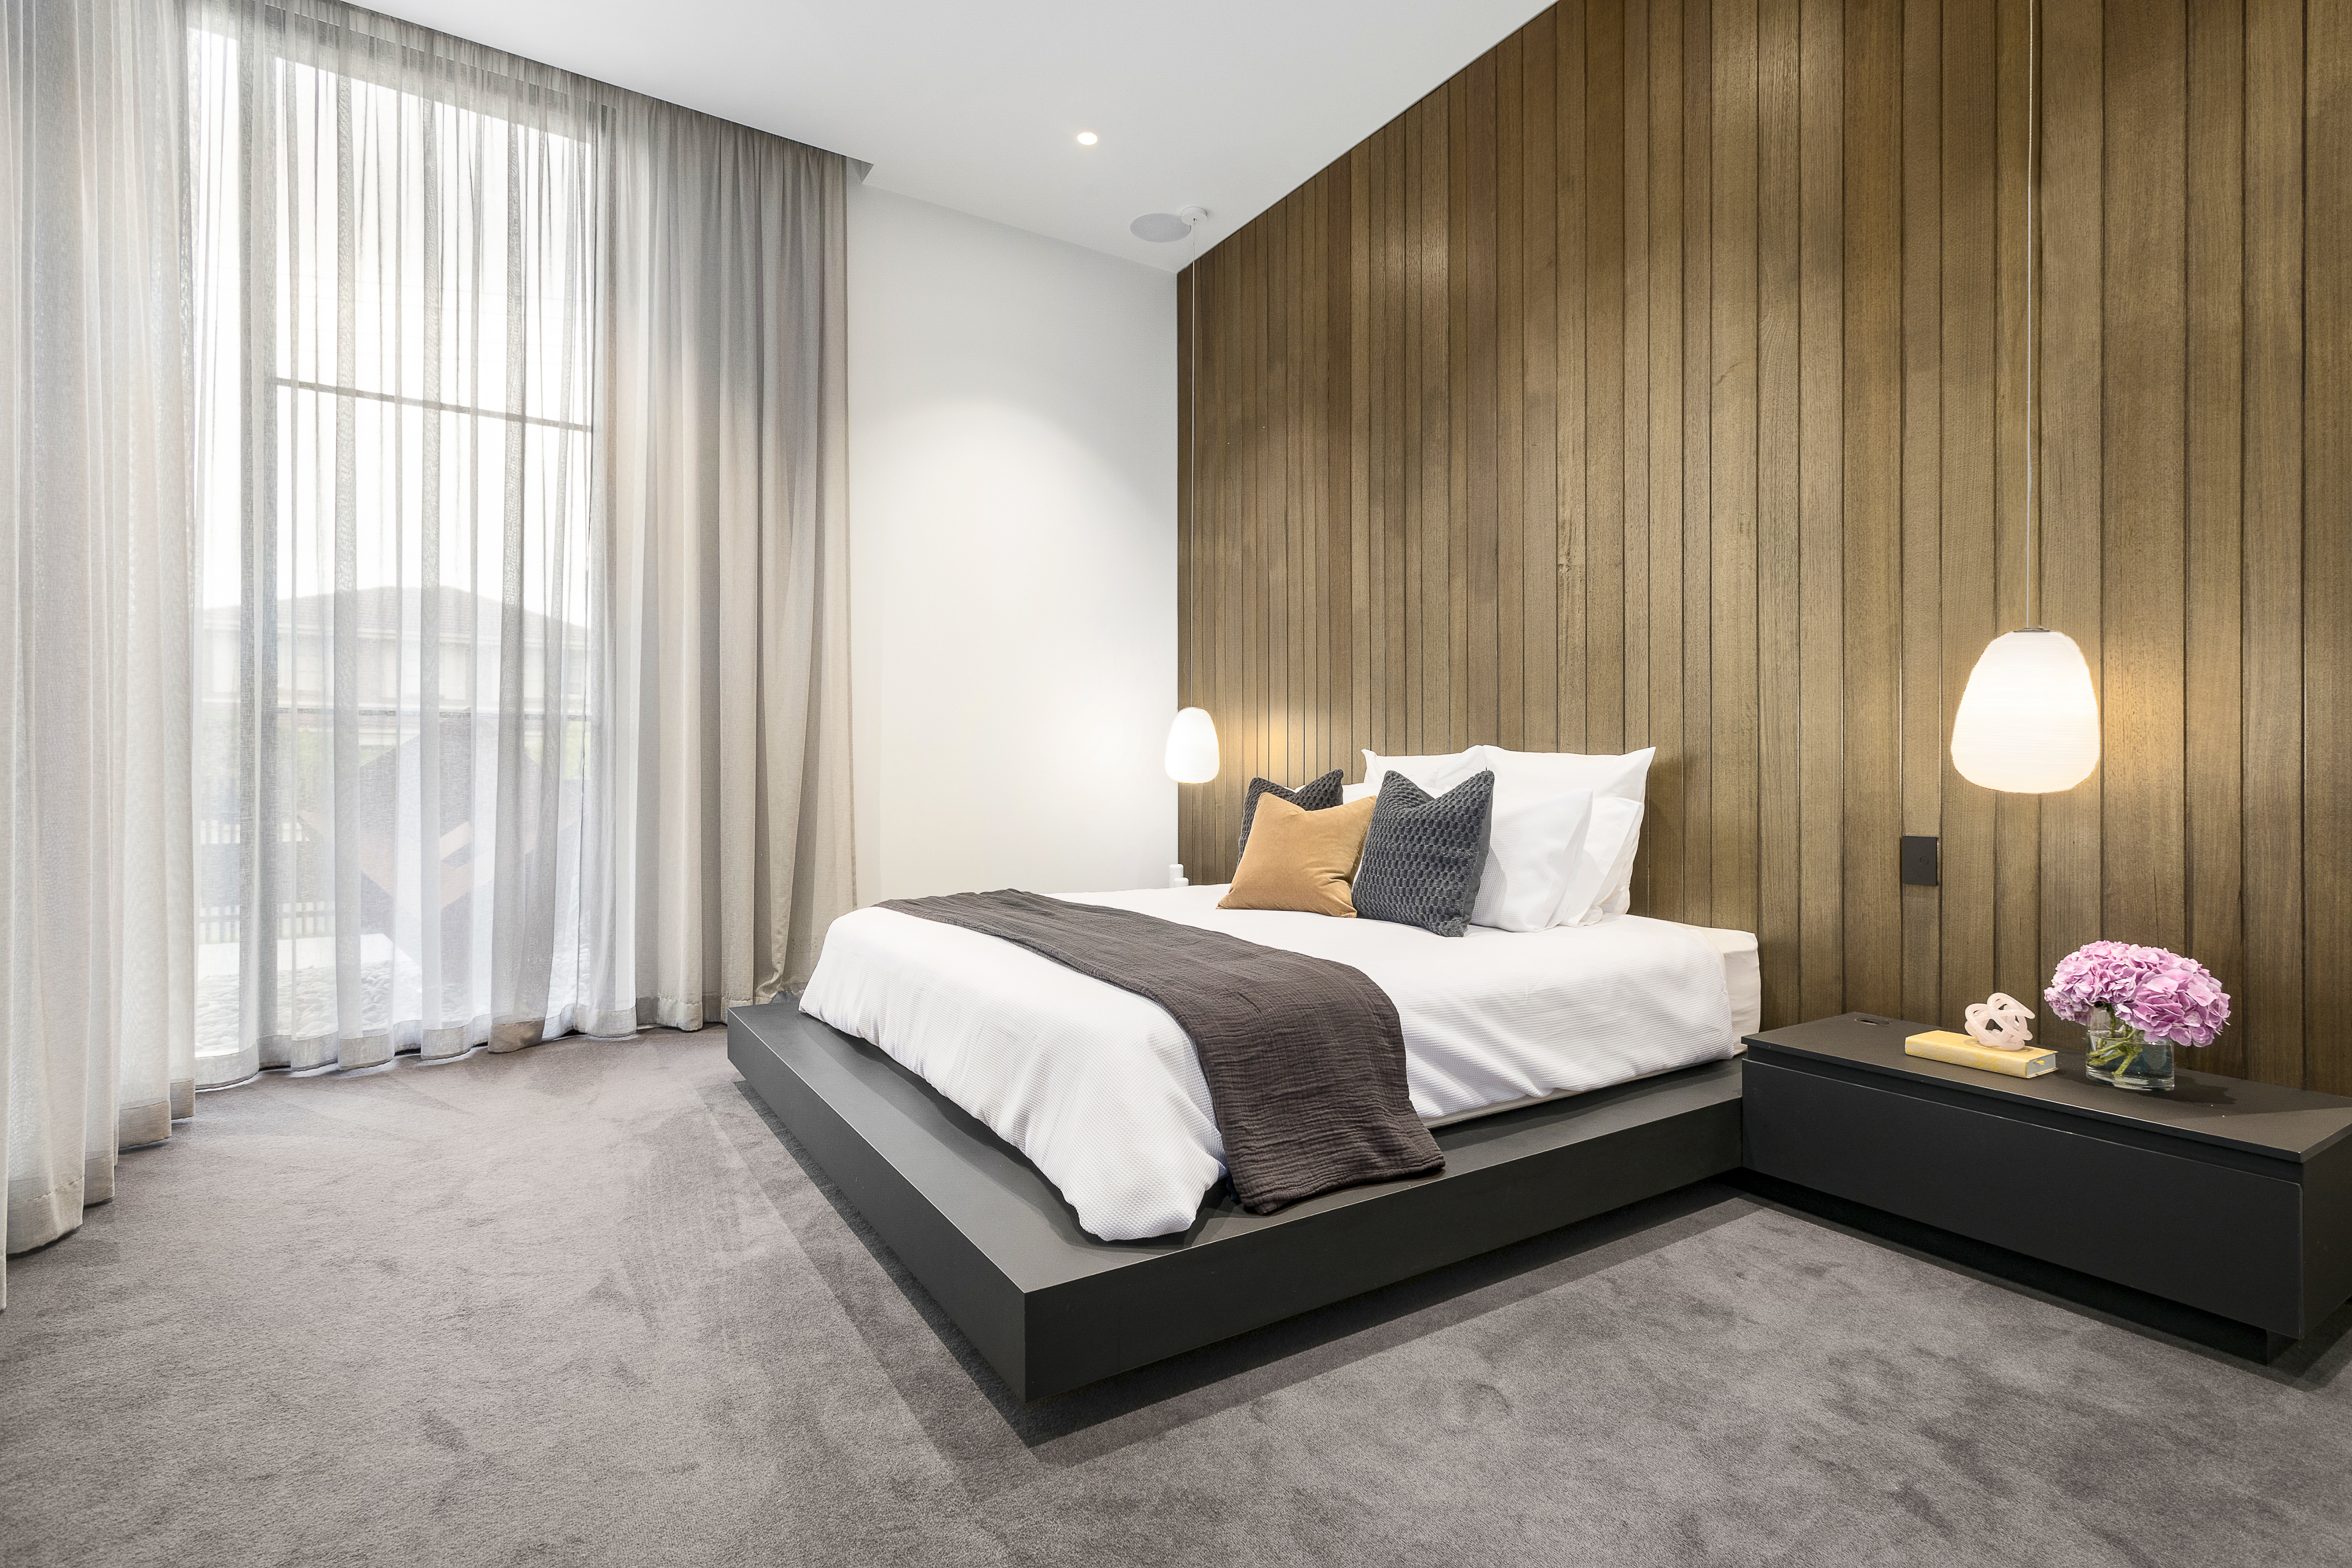 bedroom with wood paneling